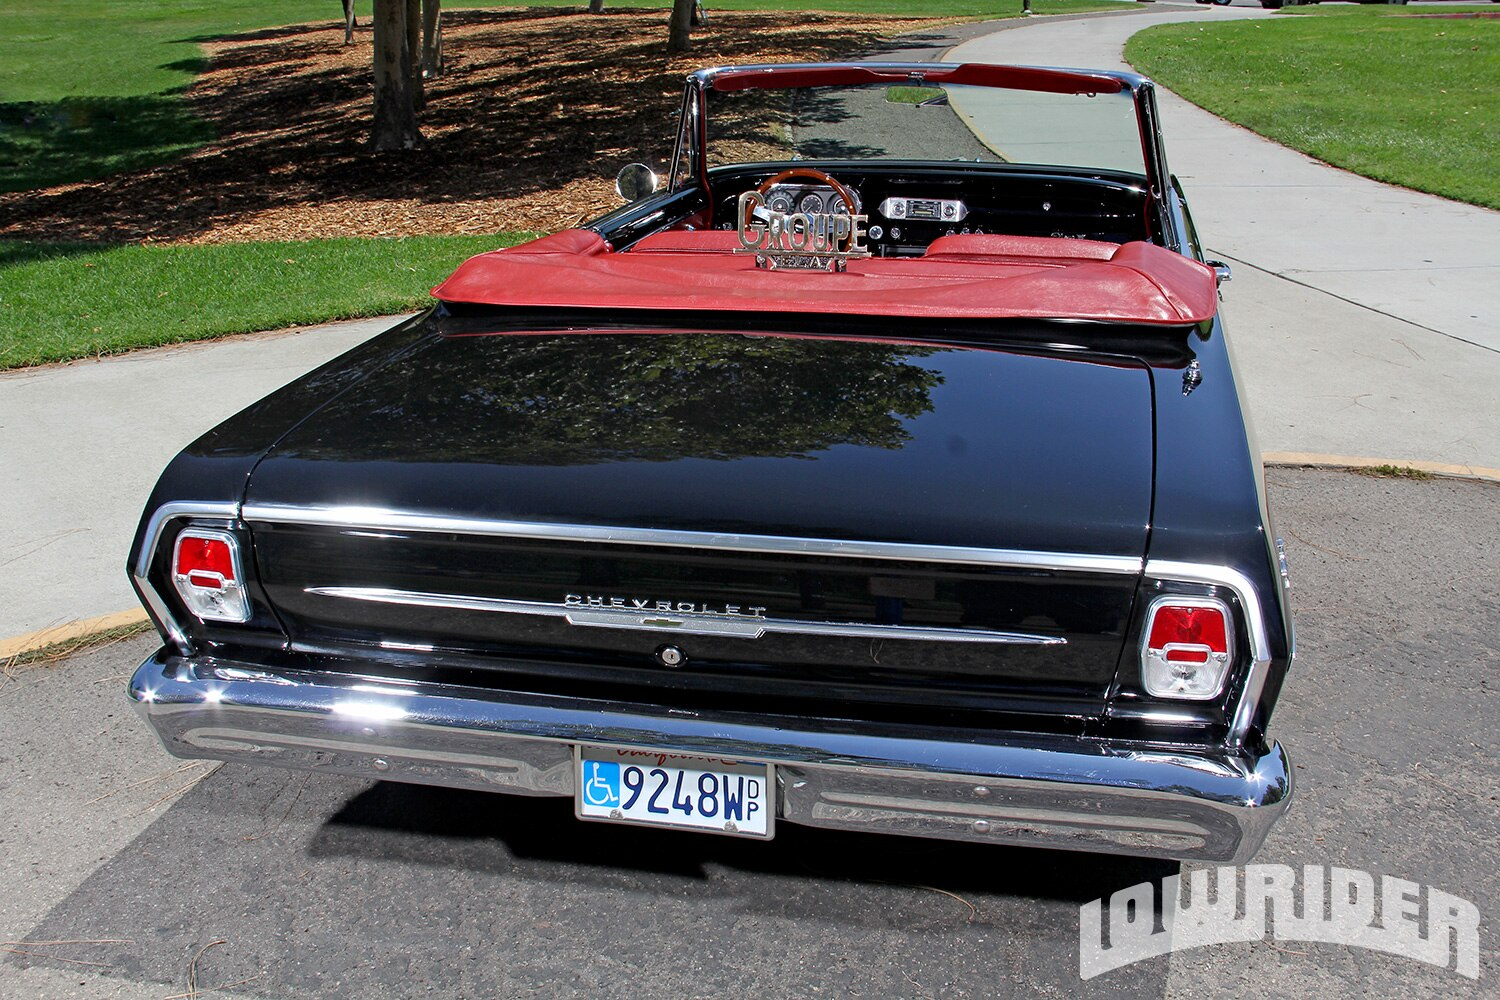 Chevrolet Nova Rear View on Rear Four Link Suspension Setup